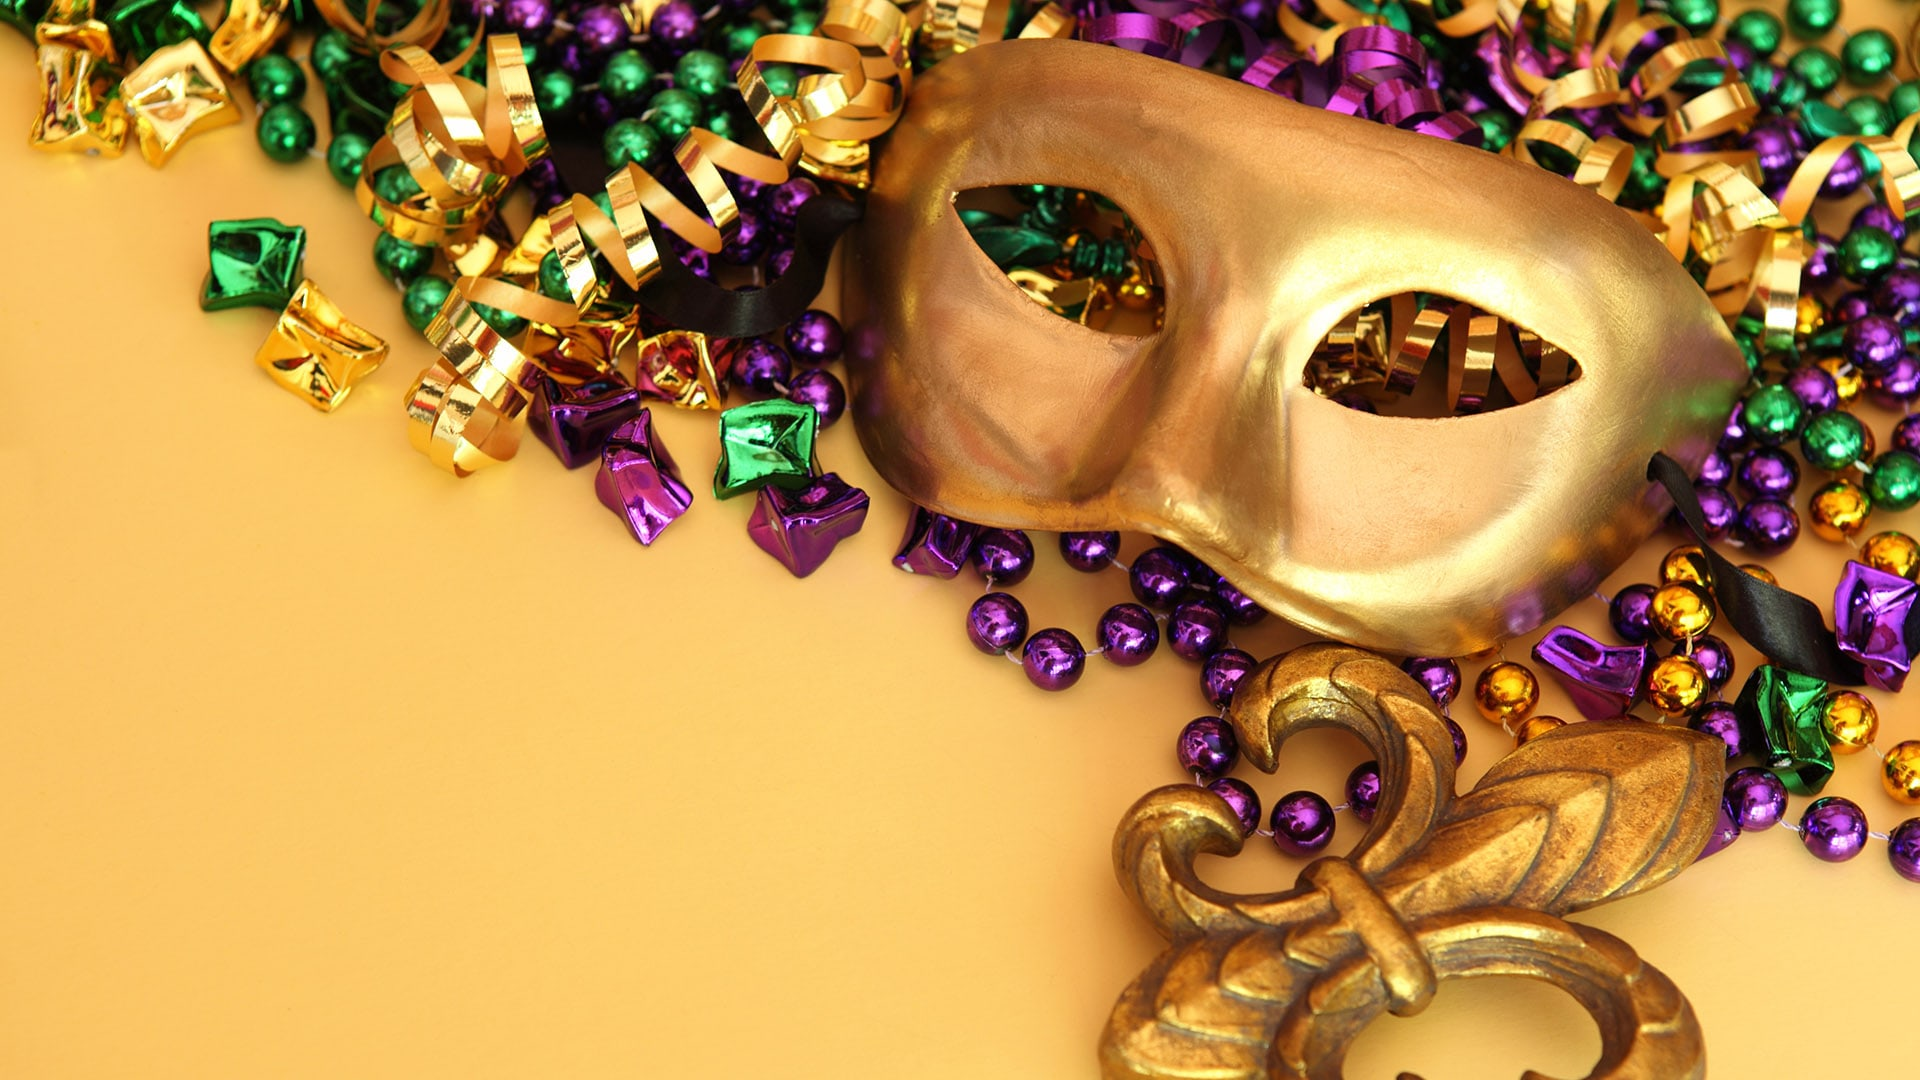 Mardi Gras Wallpapers